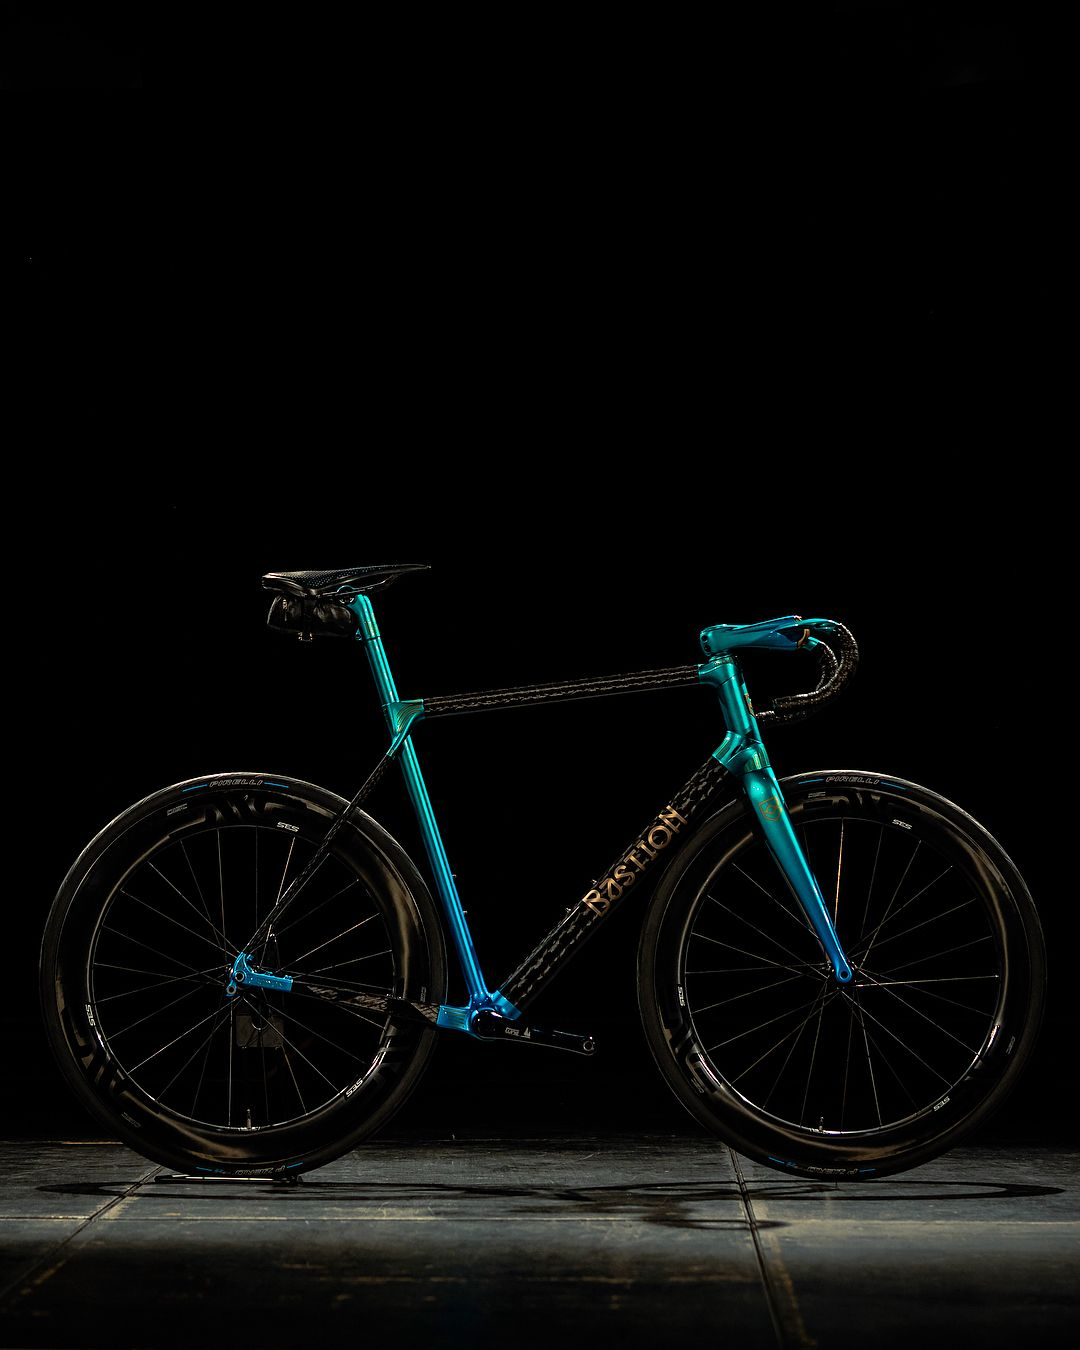 The Bastion Cycles Demon For Netherlands Bureau Fidder With